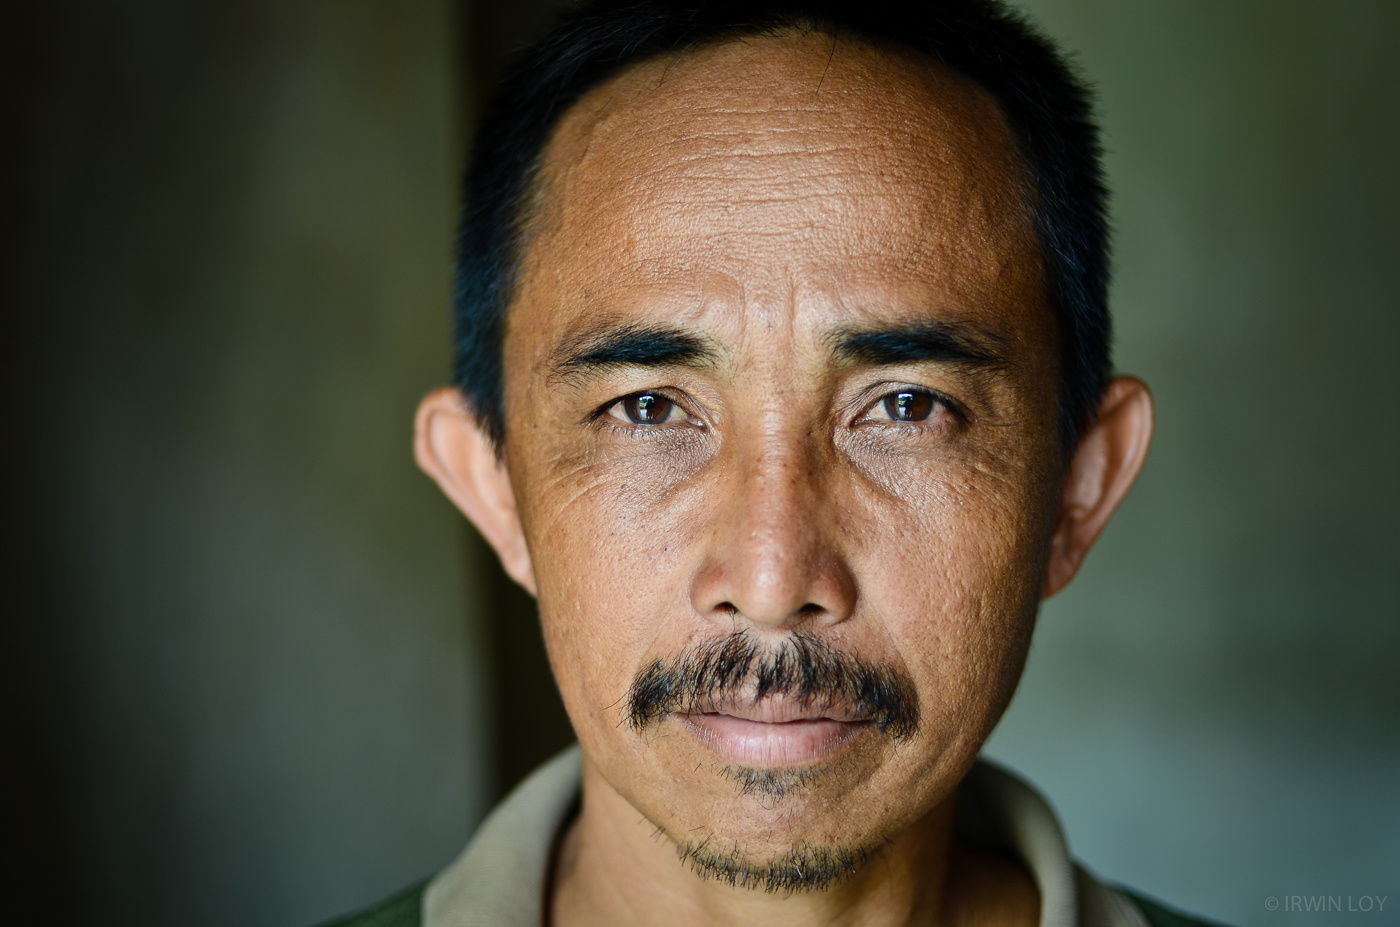 Adrianus says local media have traditionally ignored the issues his community grapples with, from impassable roads to disputes with a major palm oil company.